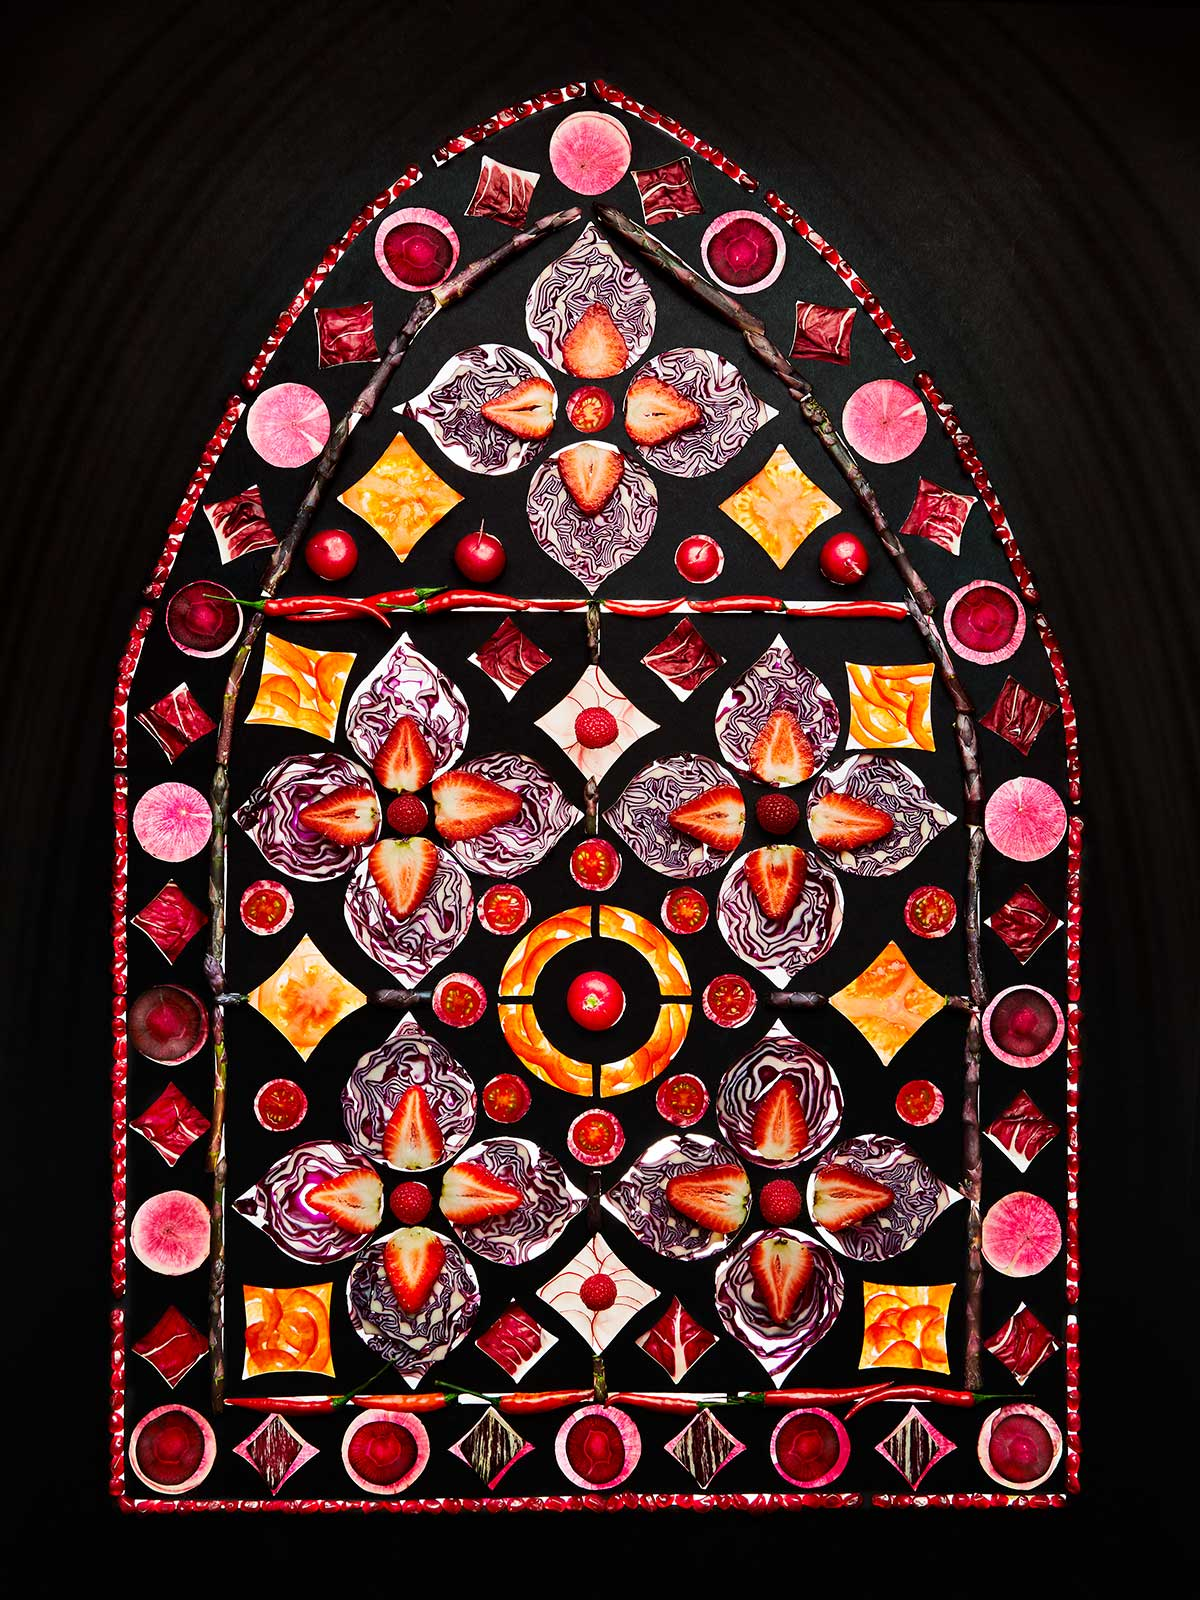 Stained-Glass_RedPurple.jpg